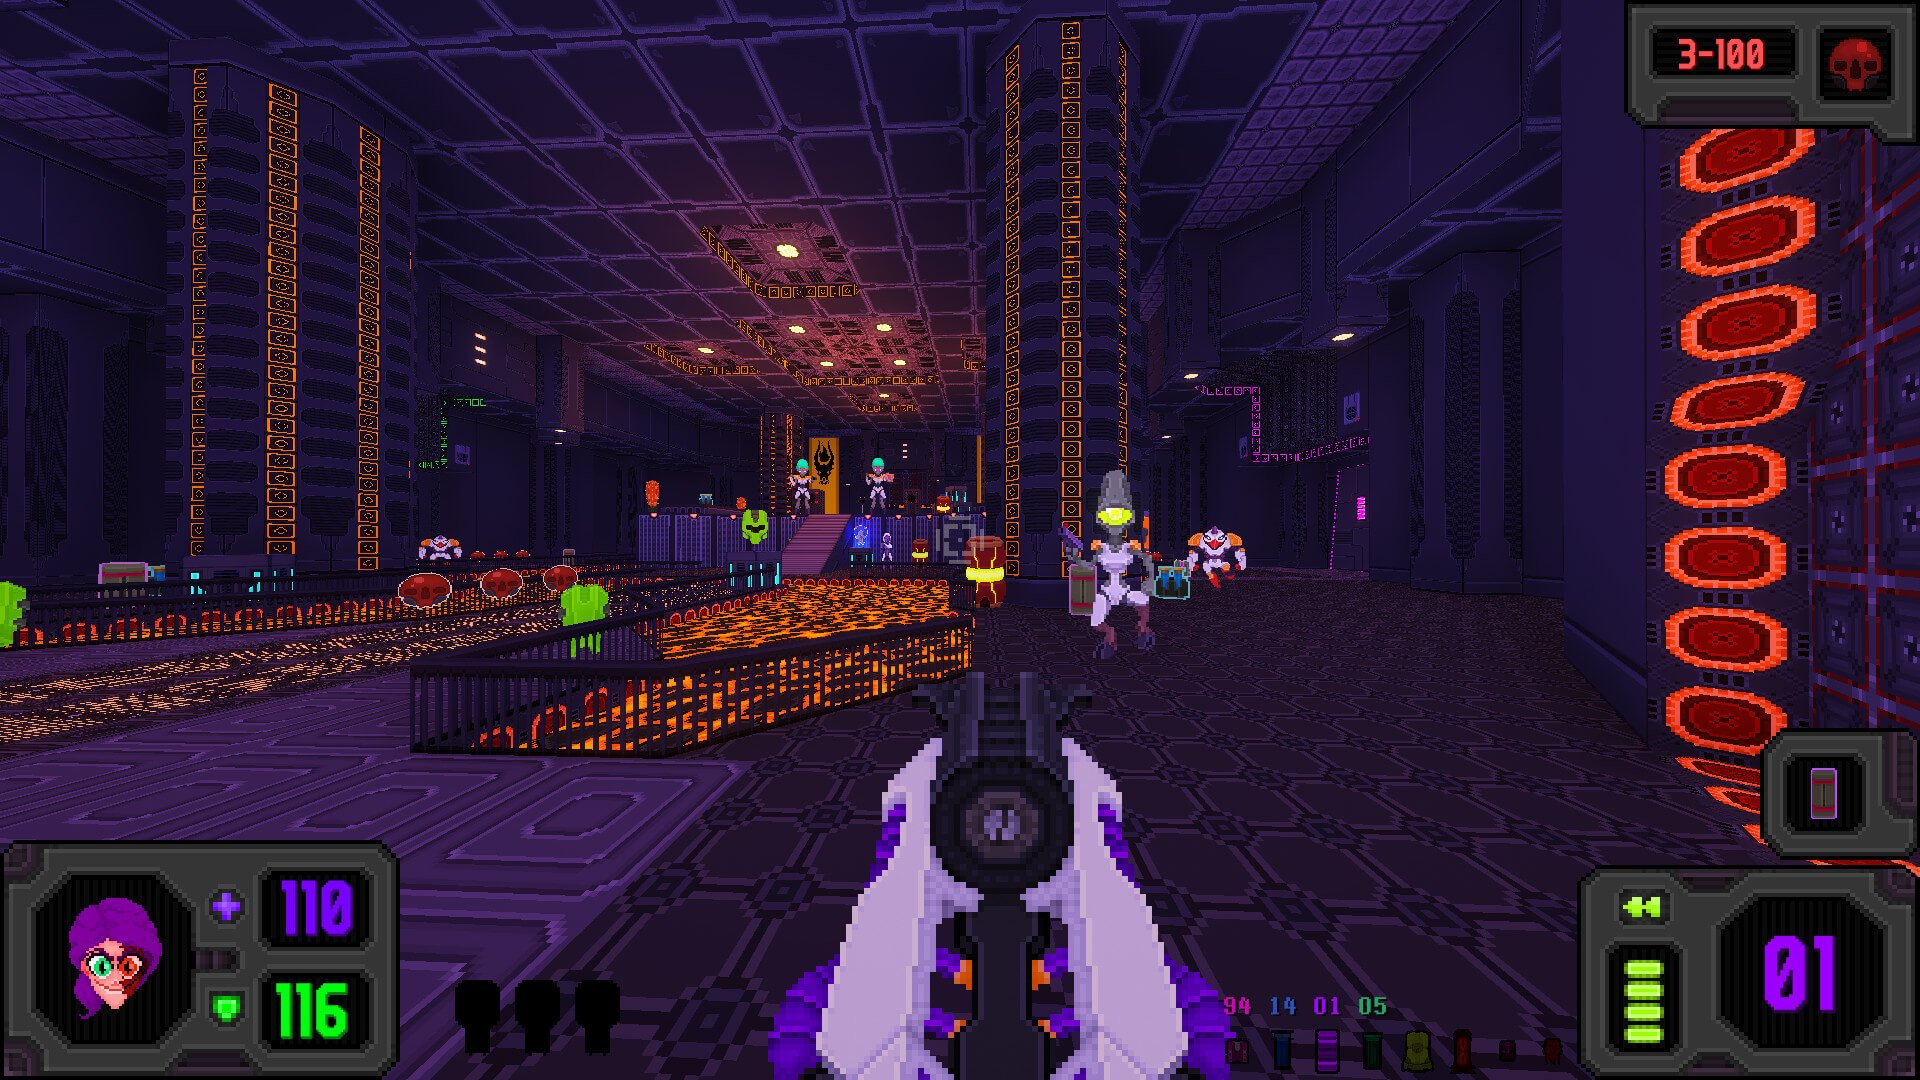 Viscerafest Releases in Early Access Next Year